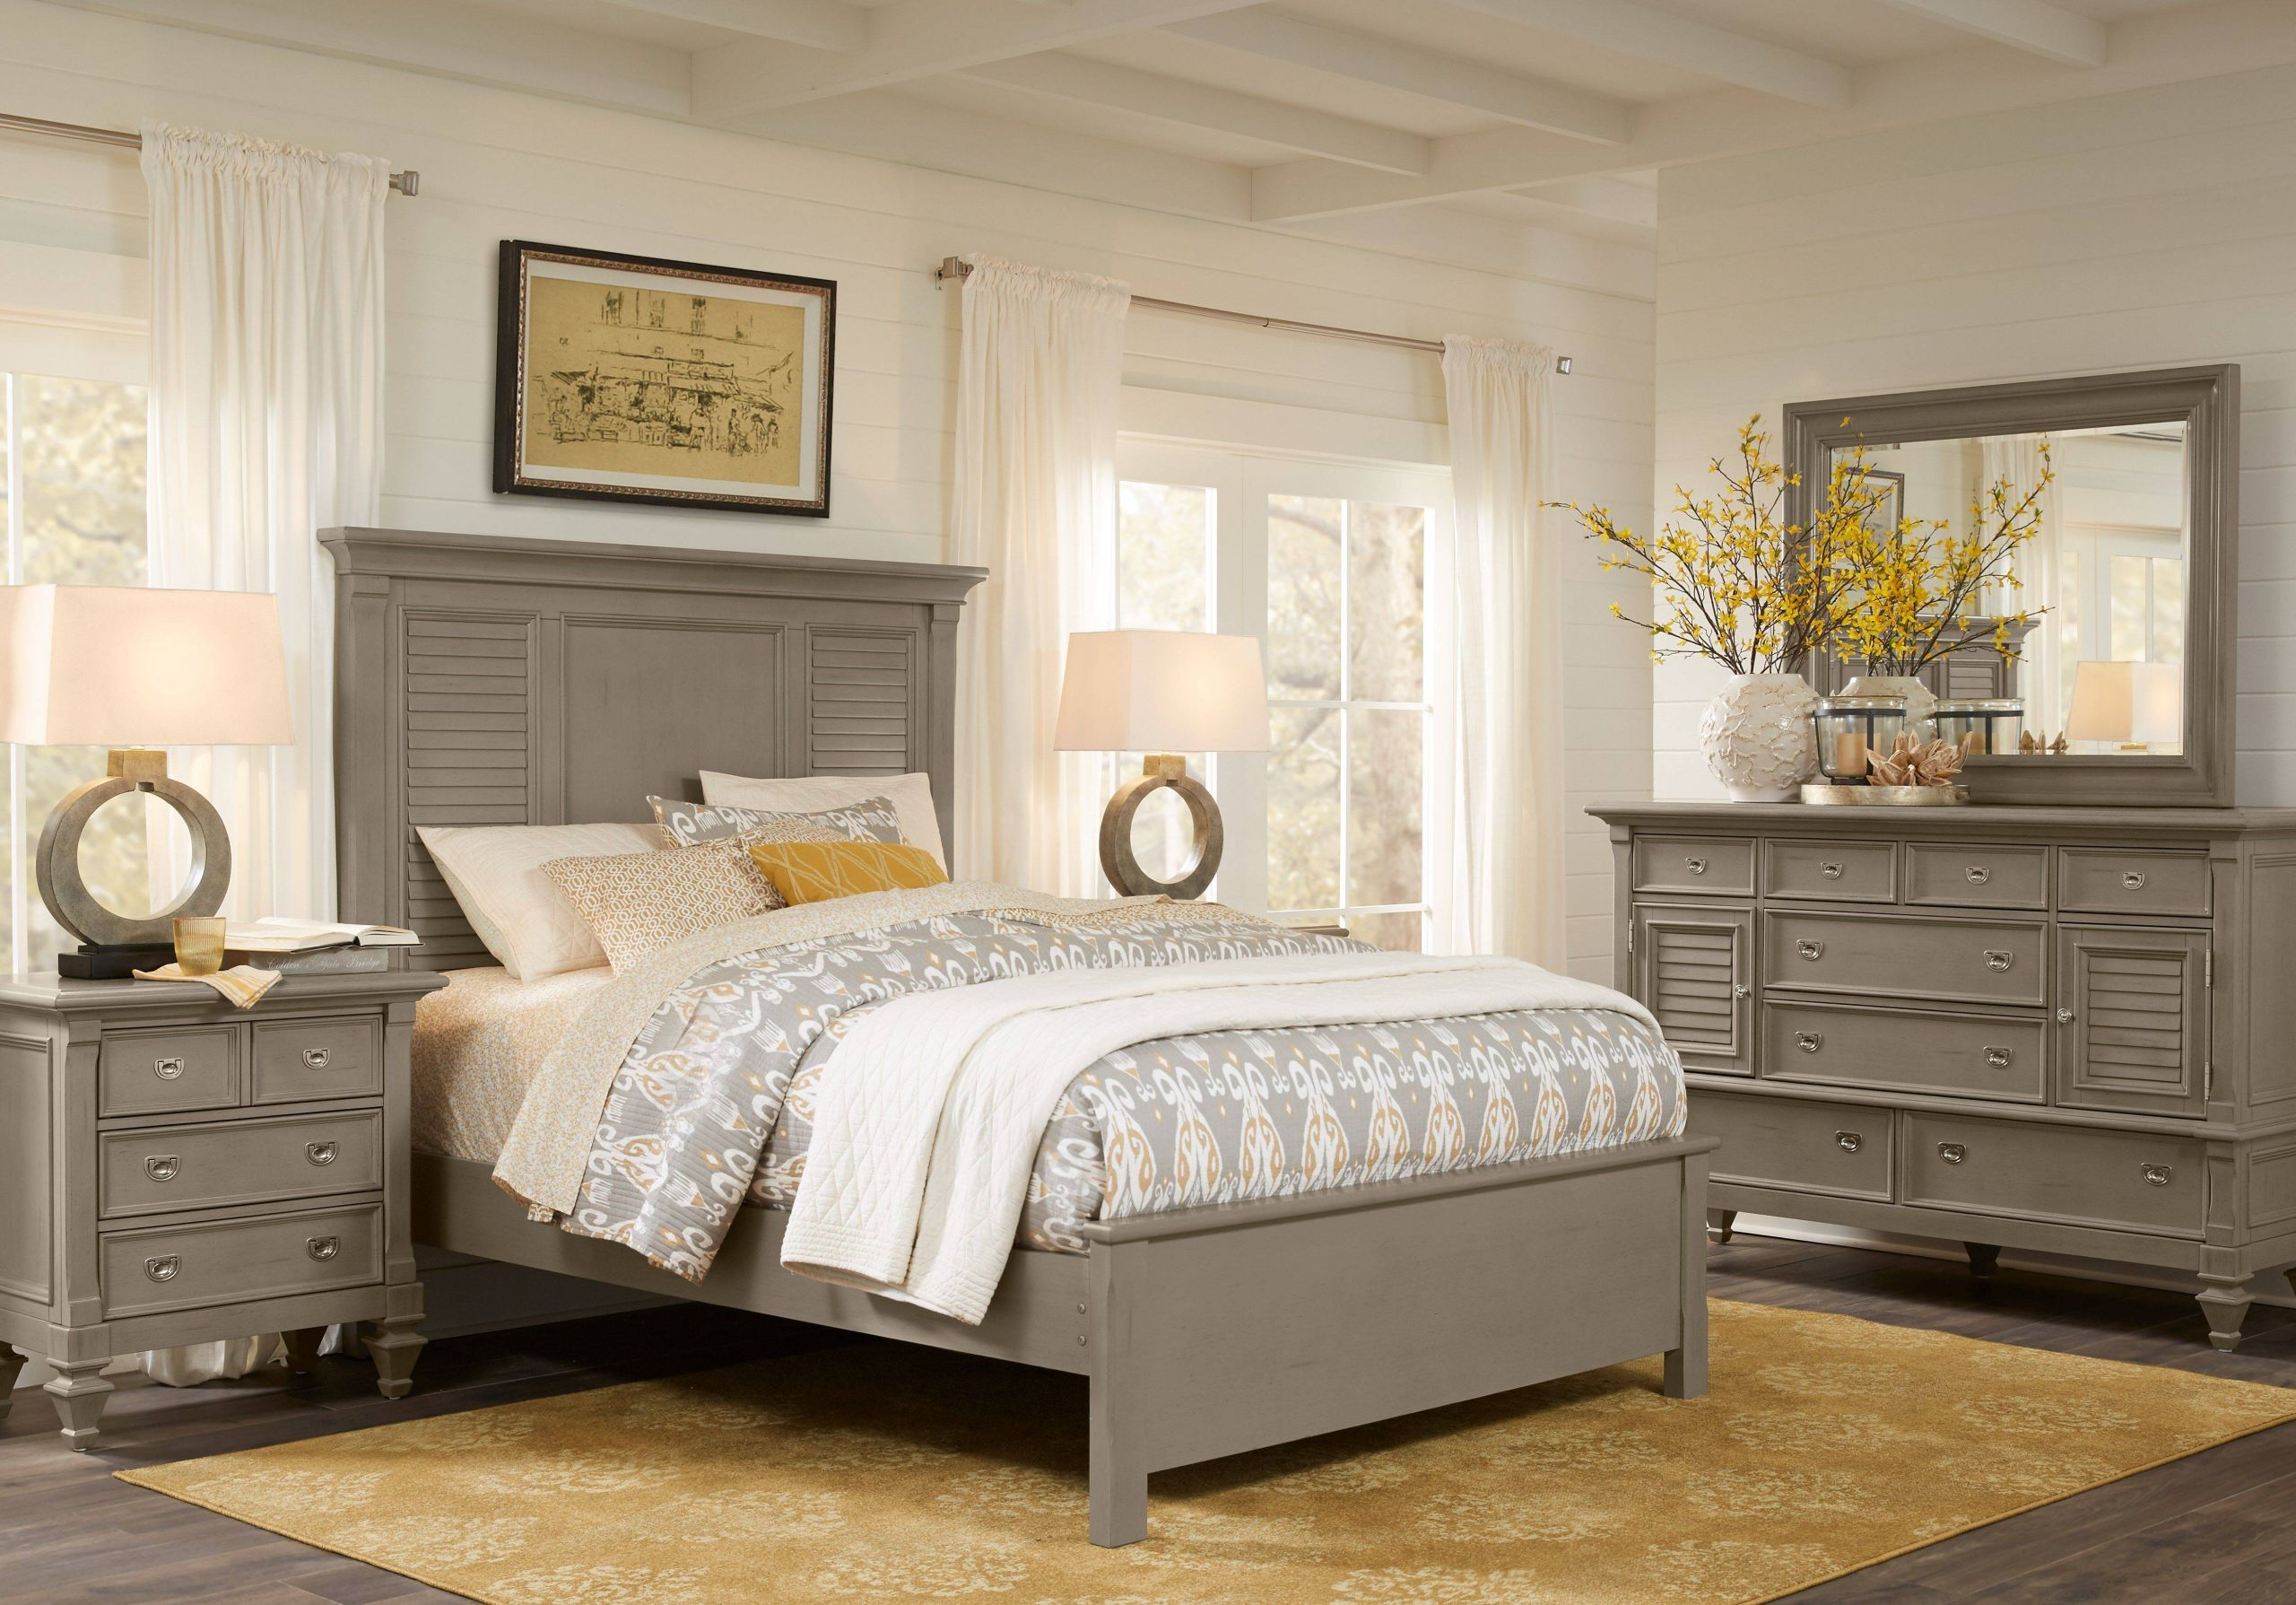 King Size Bedroom Sets Home Diy